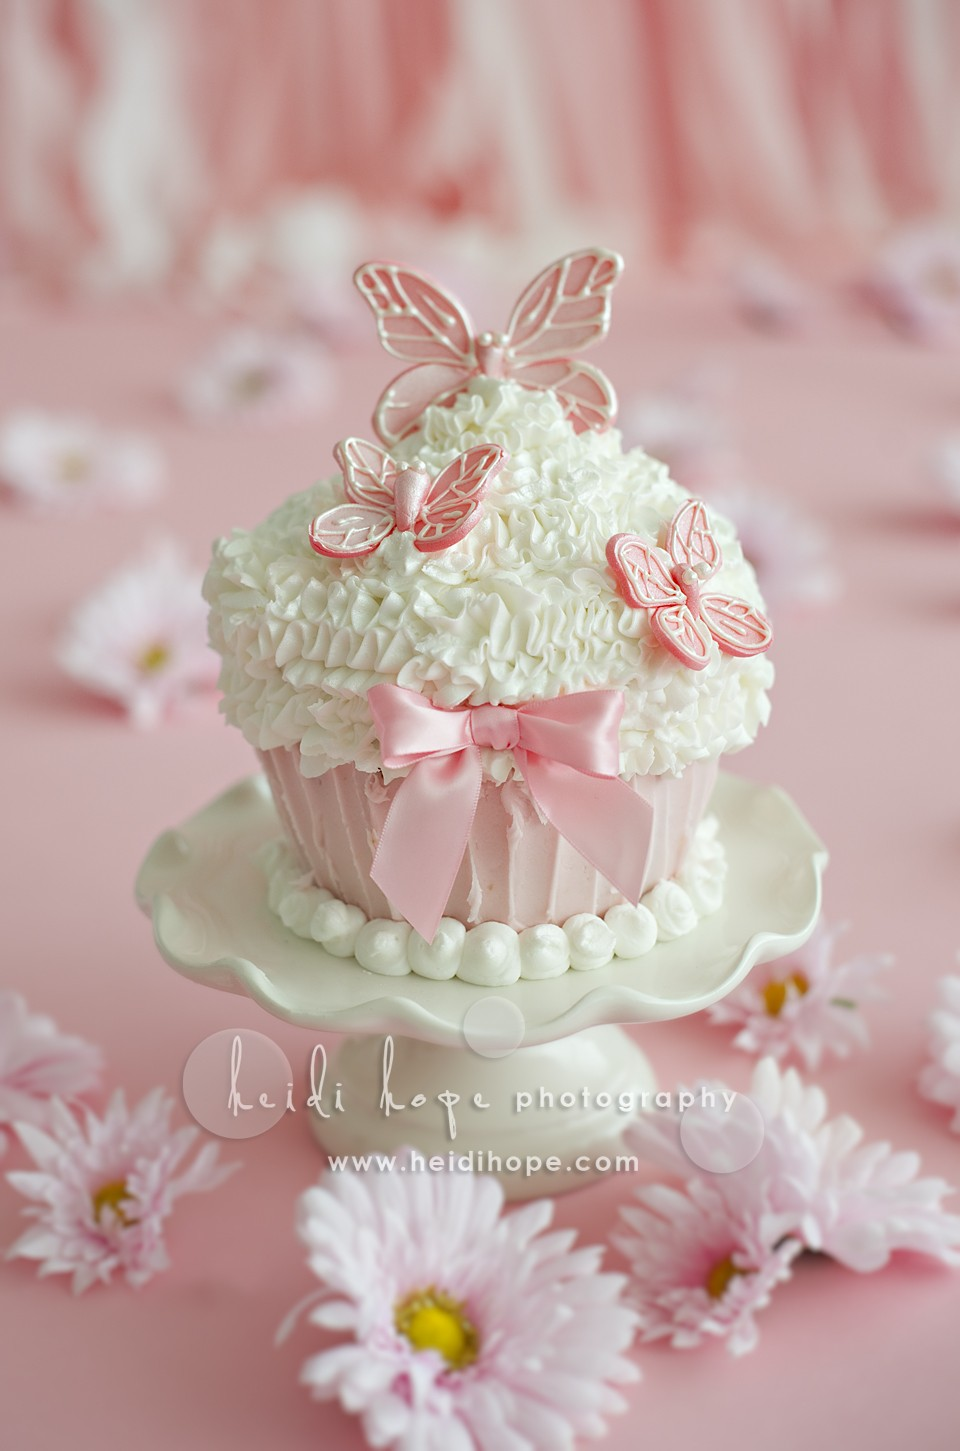 Smash Cake Ideas For First Birthday : Baby O turns 1 year old! Rhode Island and Central ...